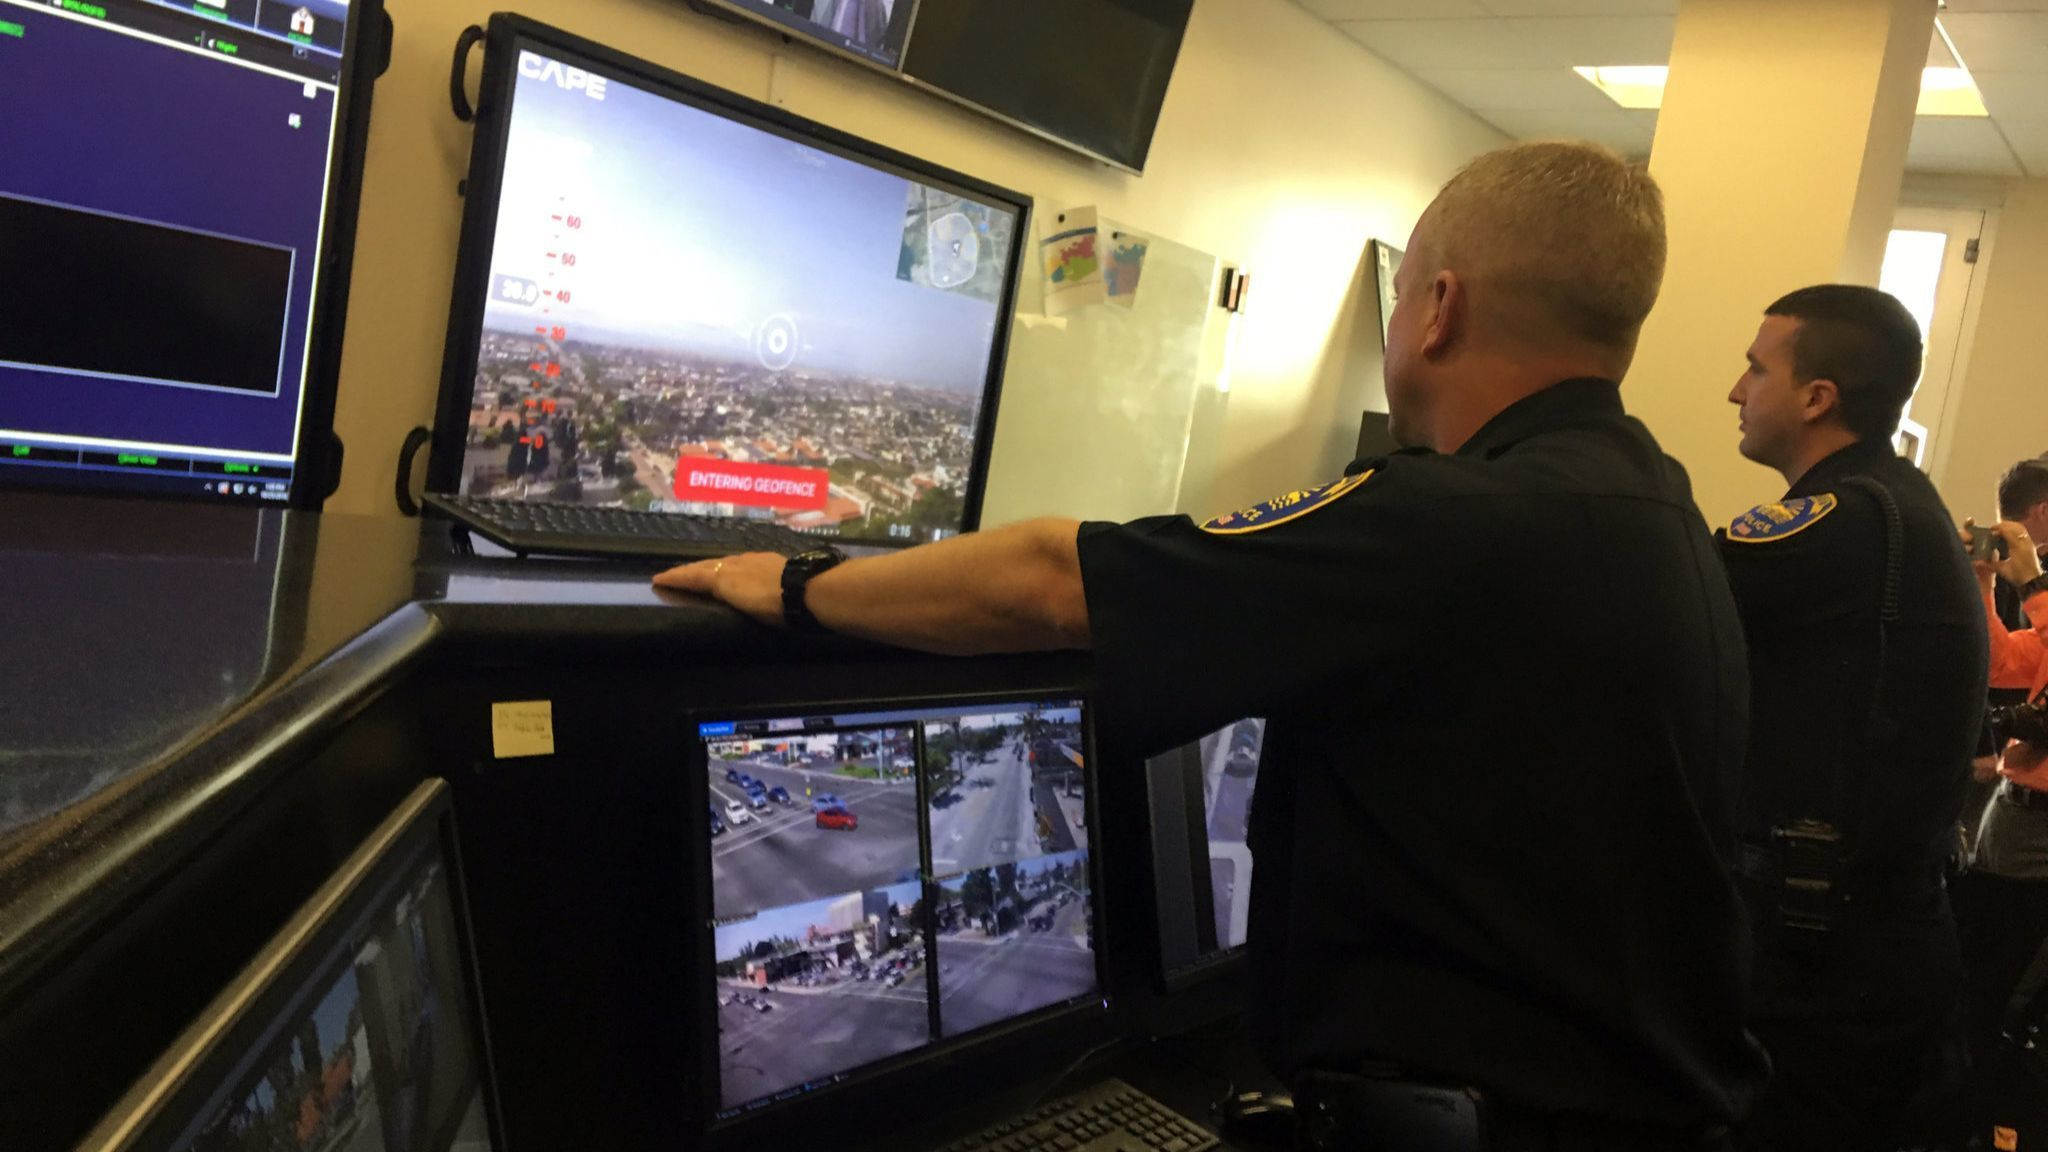 Drones now responding to 911 calls in Chula Vista